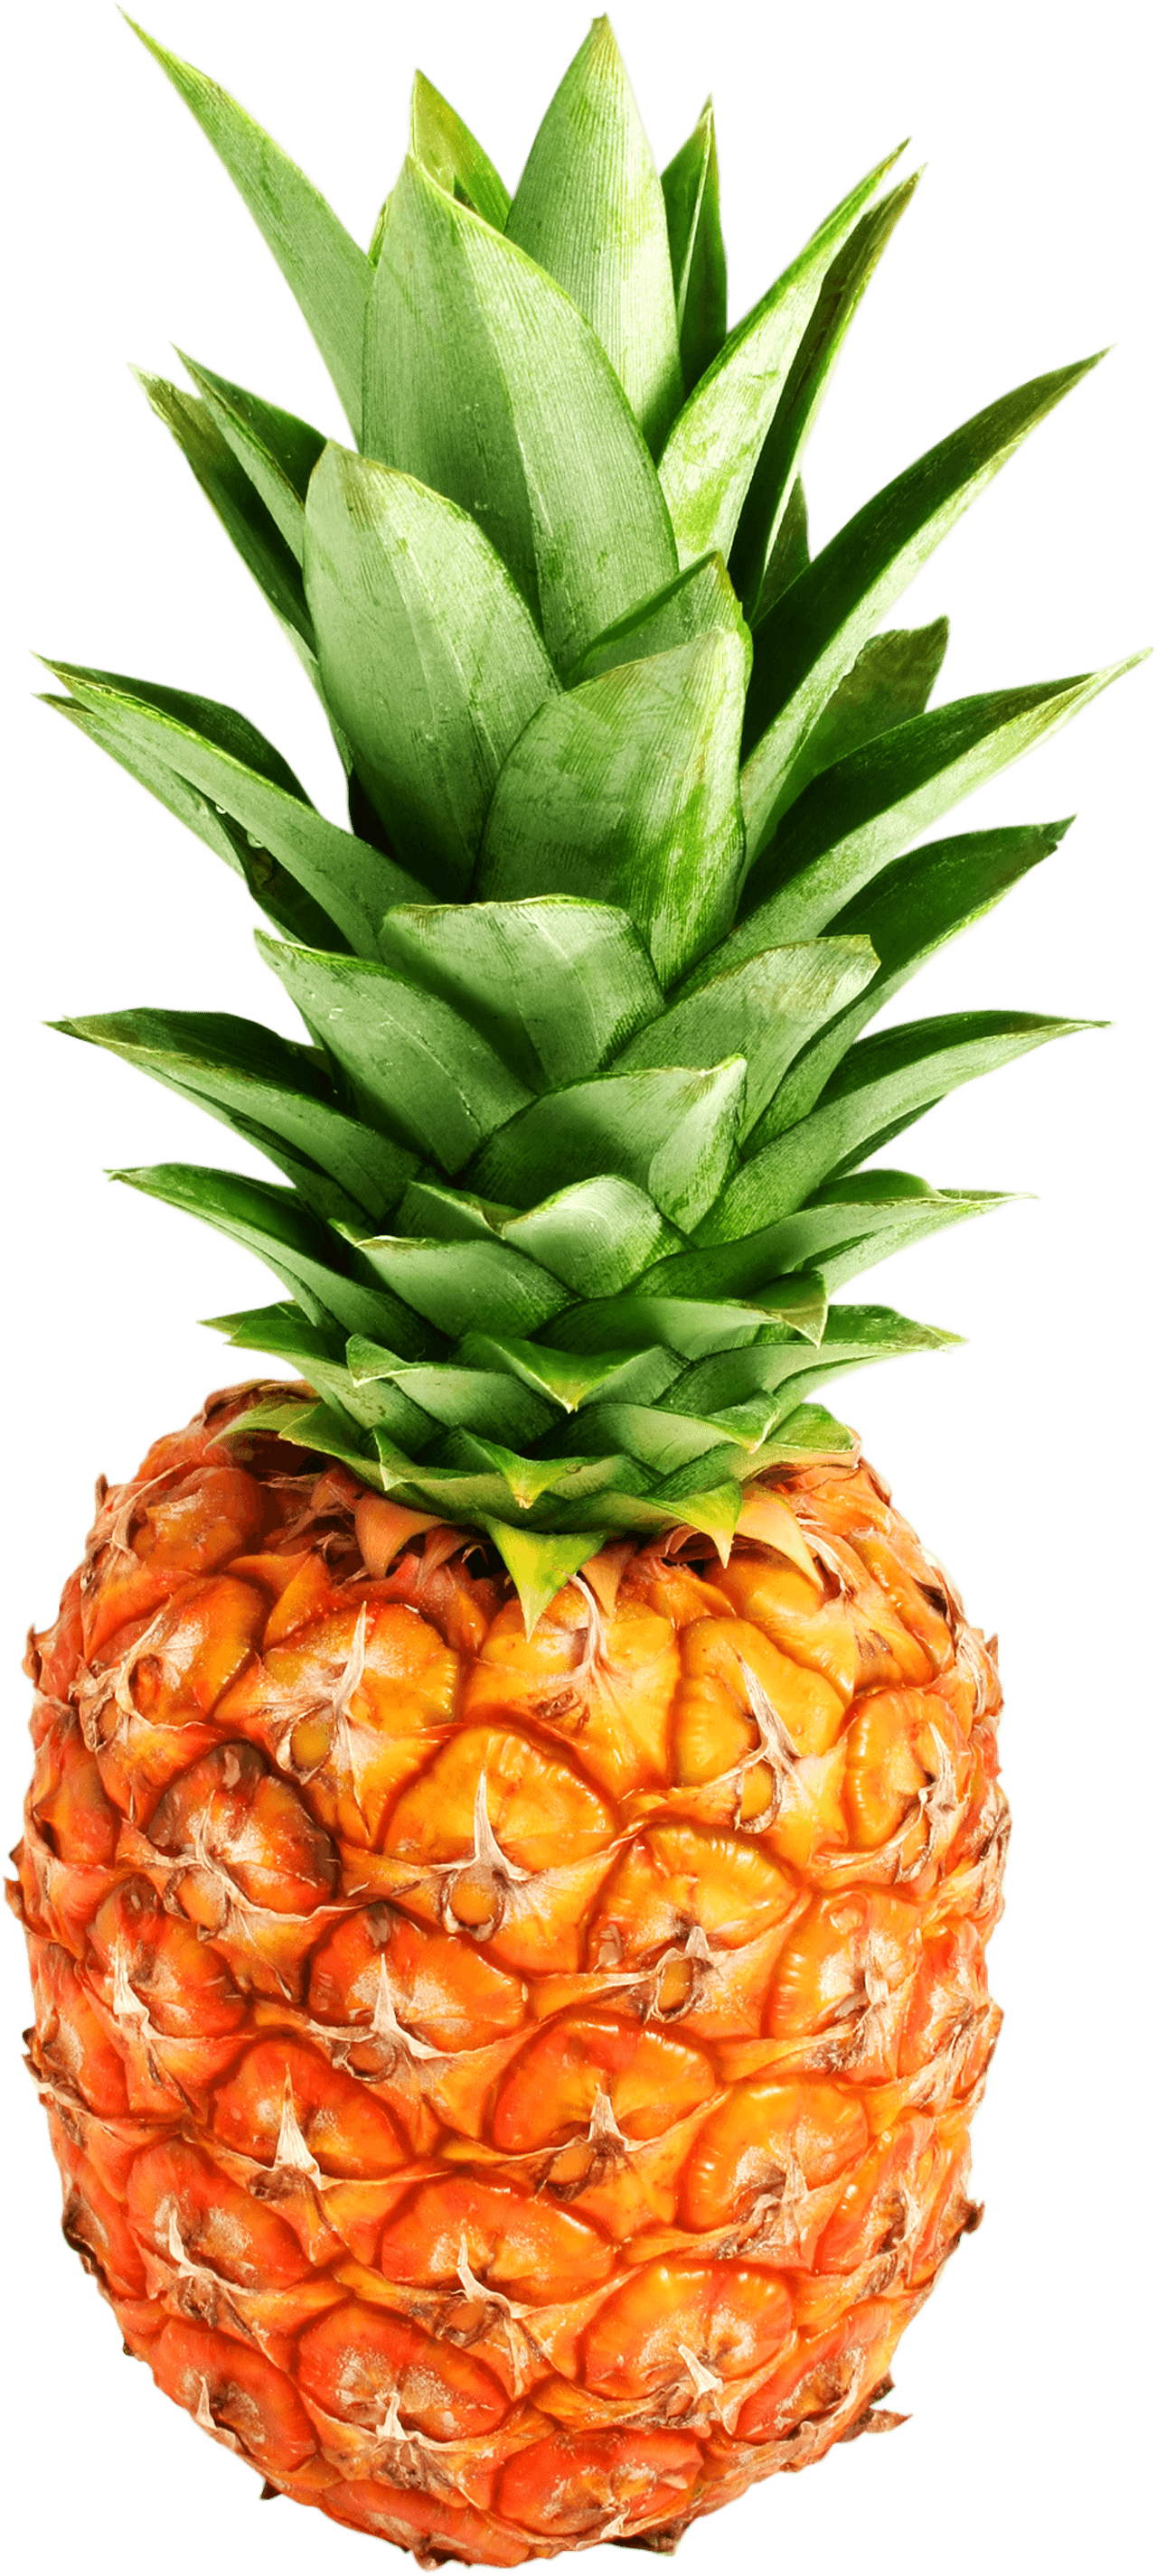 Cool Pineapple Png - Pineapple PNG Transparent Photo